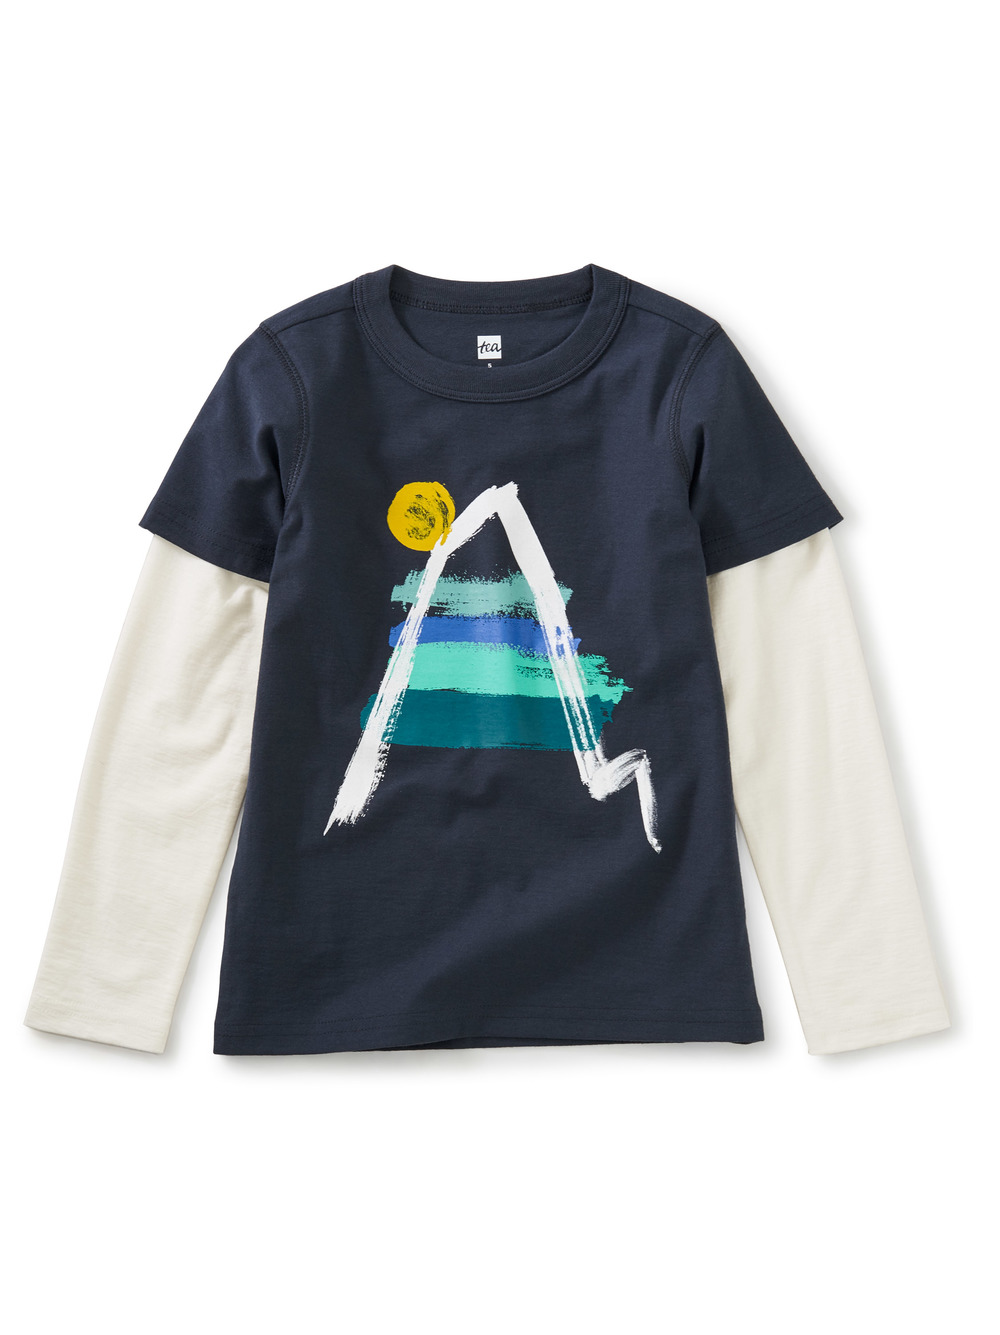 It's Climb Time Layered Graphic Tee